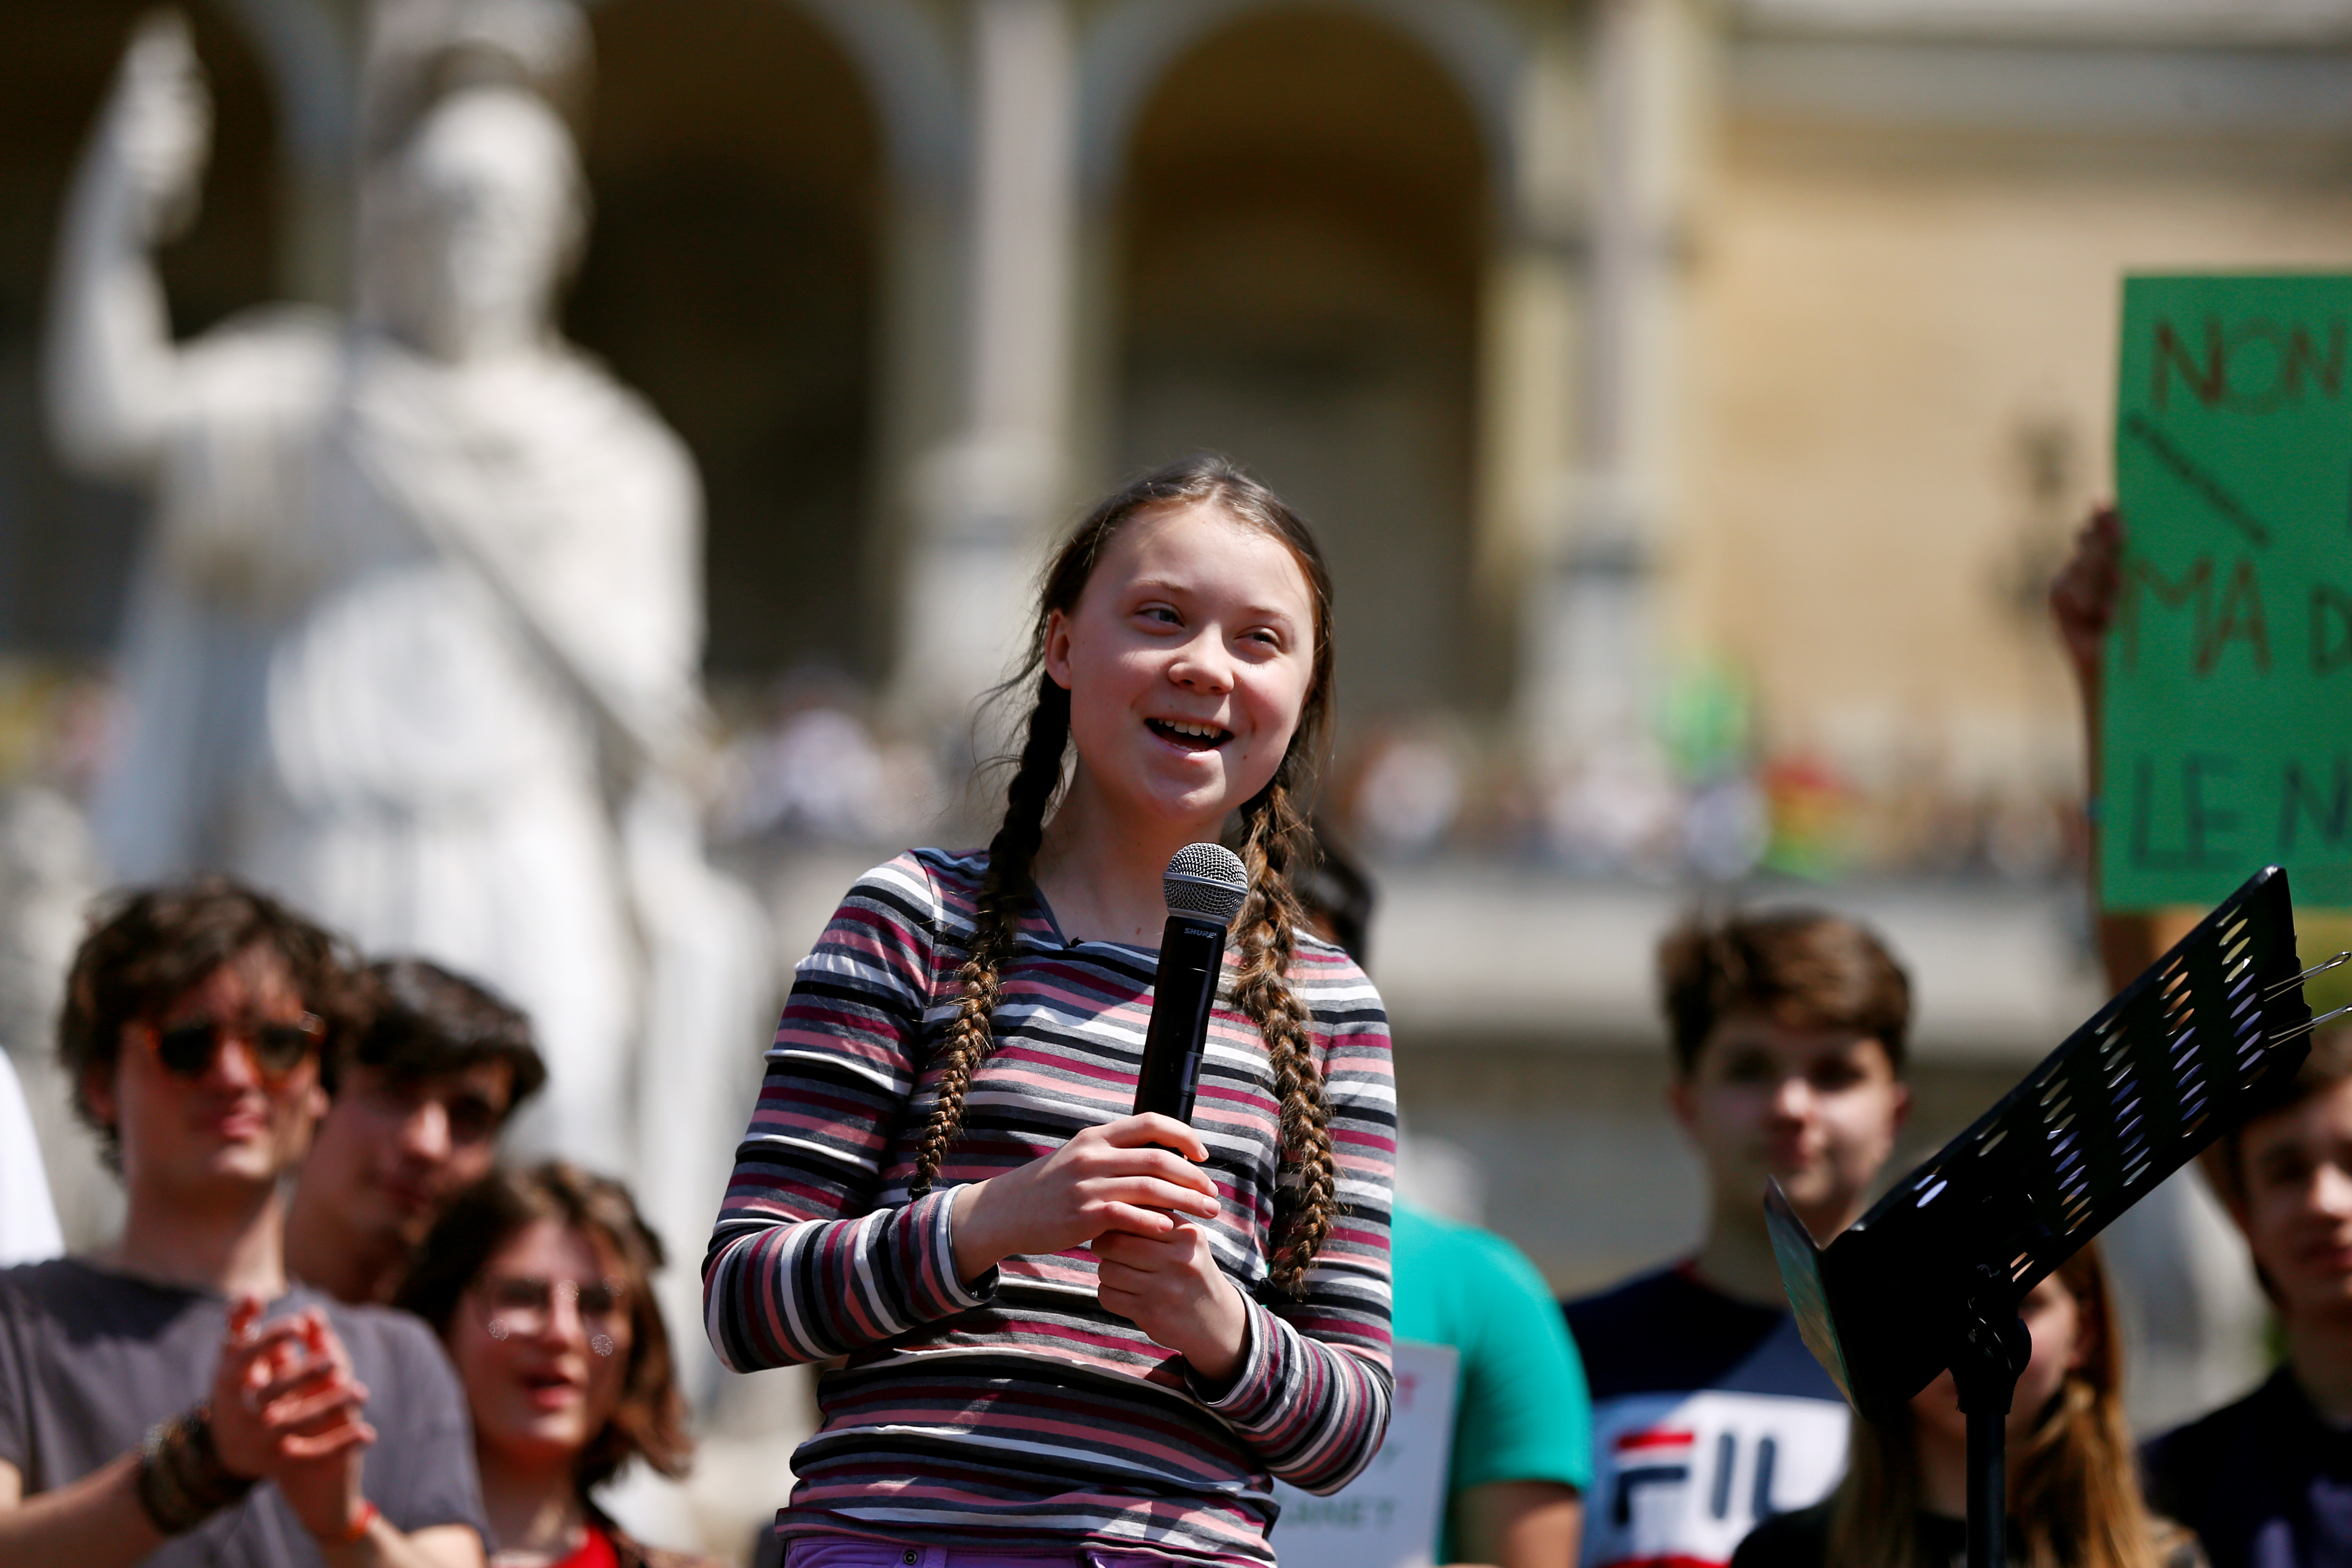 Swedish environmental activist Greta Thunberg joins Italian students to demand action on climate change, in Piazza del Popolo, Rome, Italy April 19, 2019. REUTERS/Yara Nardi